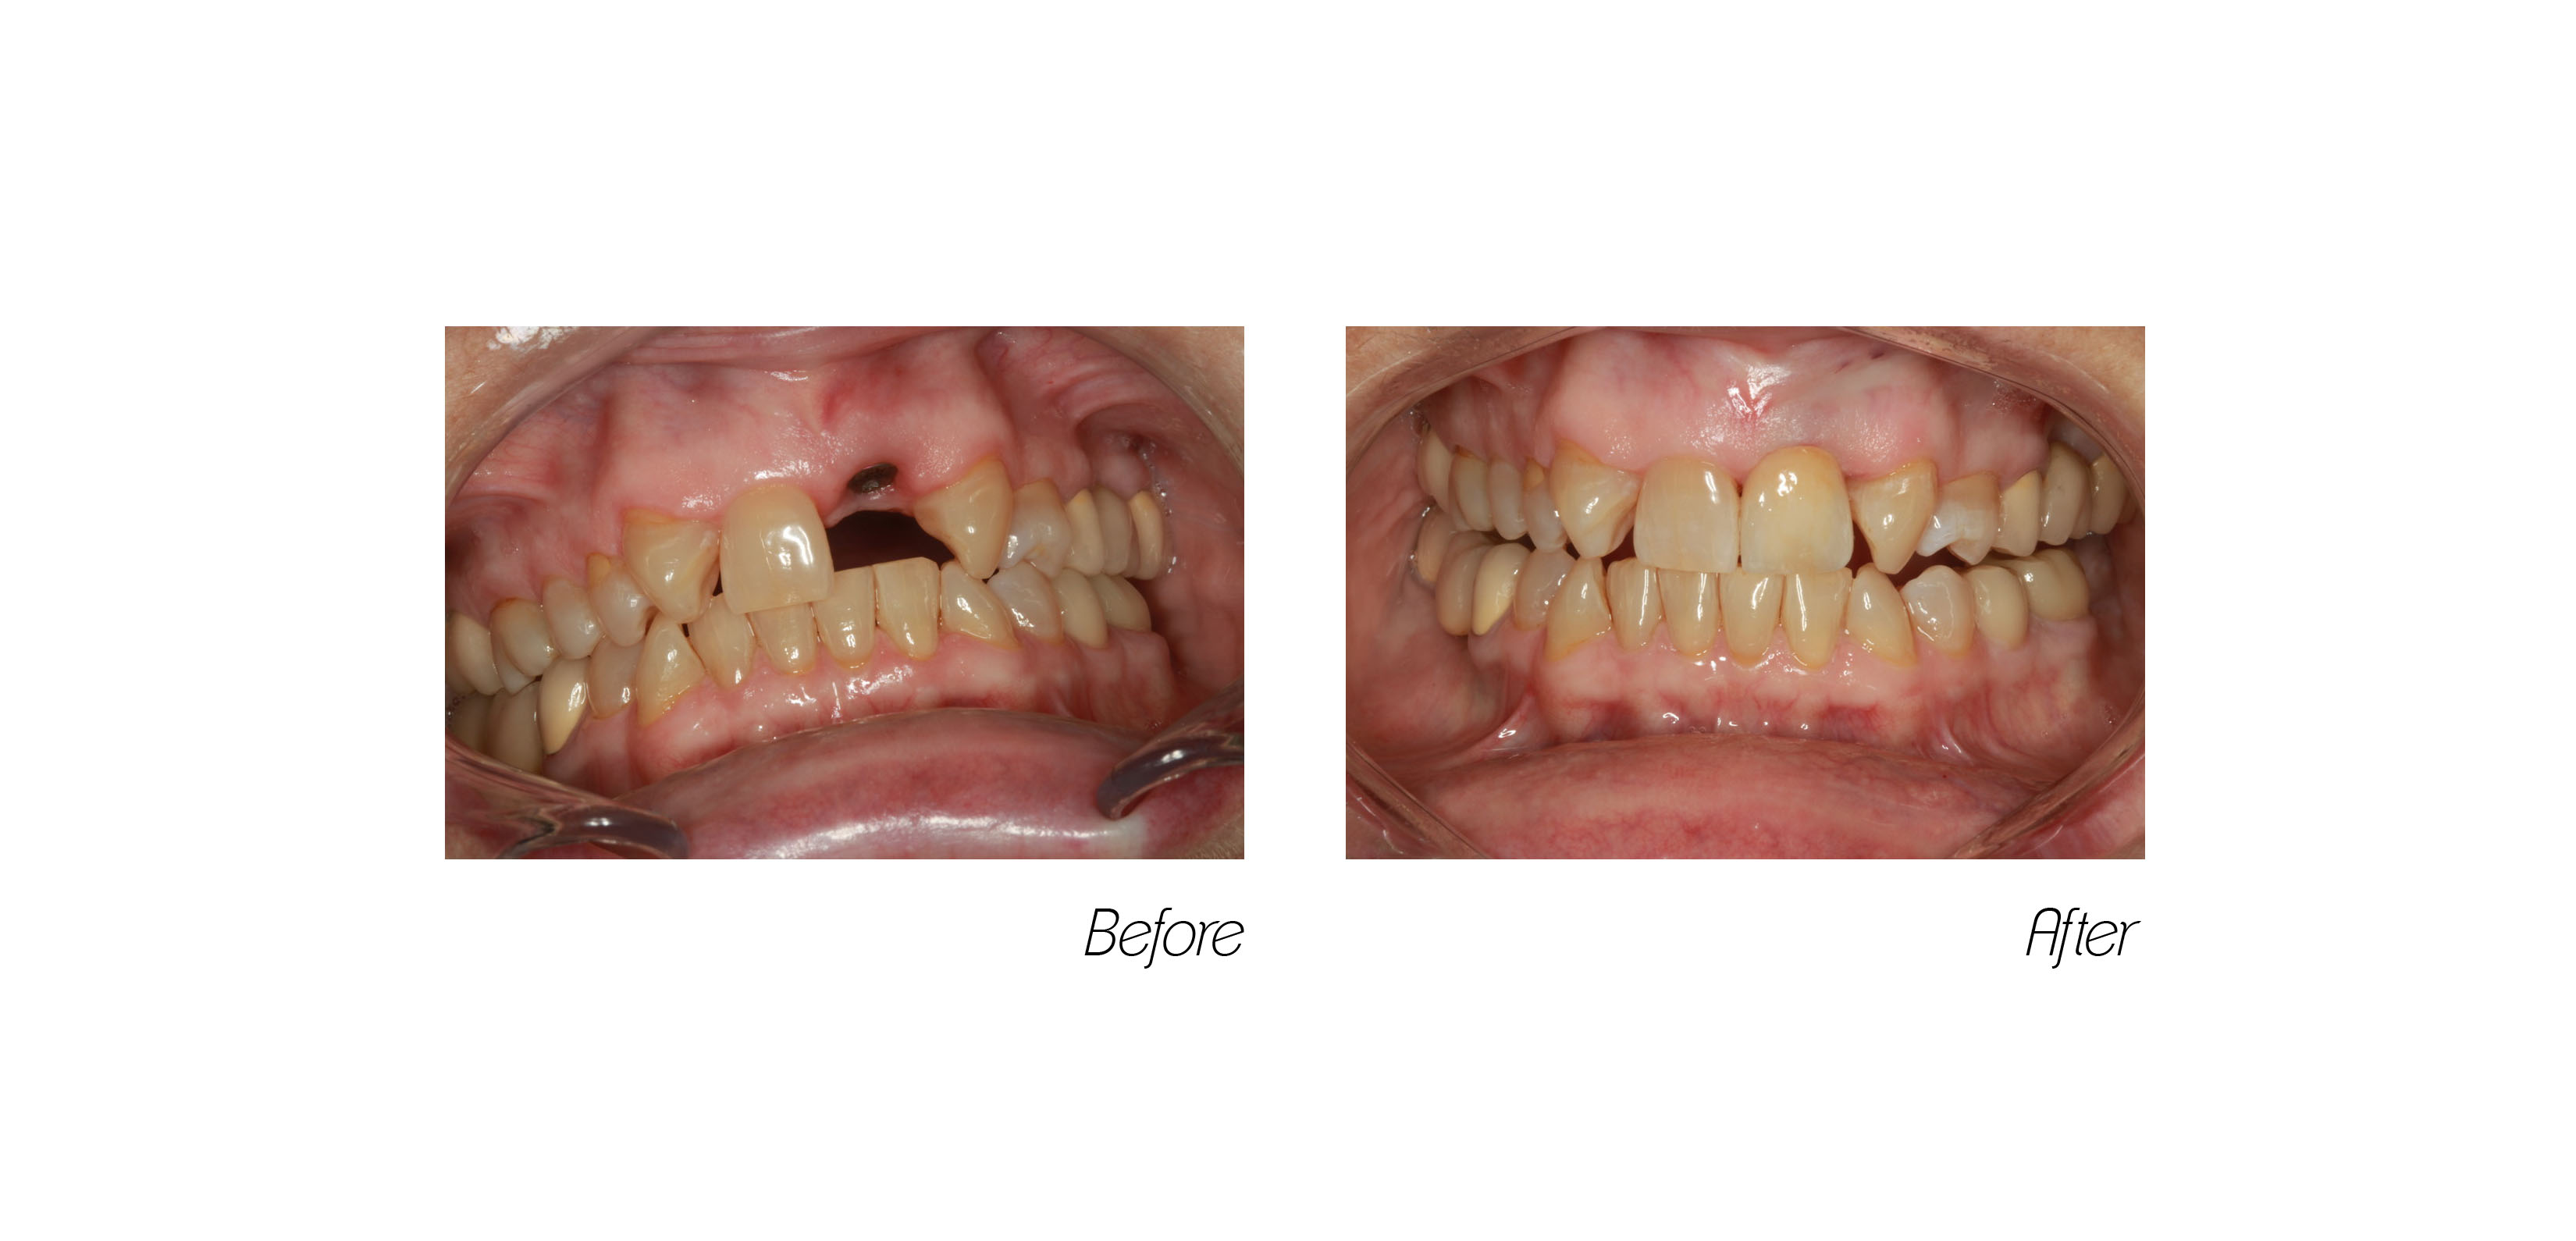 Crowns#7 (Implant)